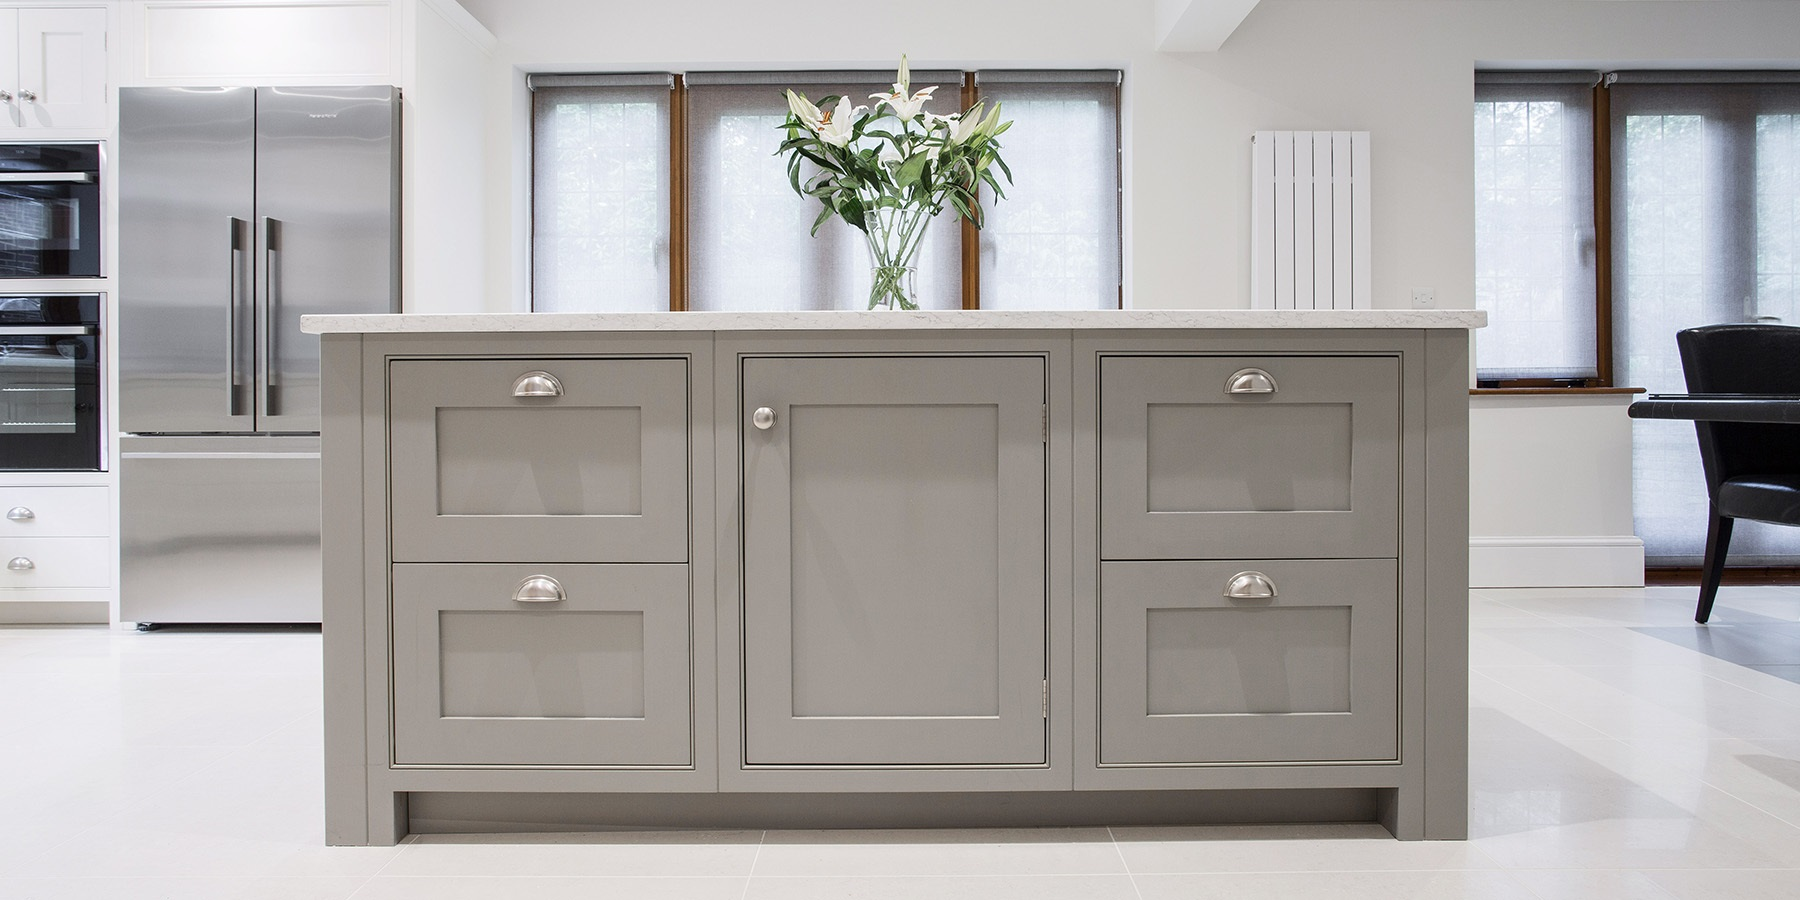 Bespoke Luxury Kitchen Island - Burlanes handmade Wellsdown kitchen island with white worktops.